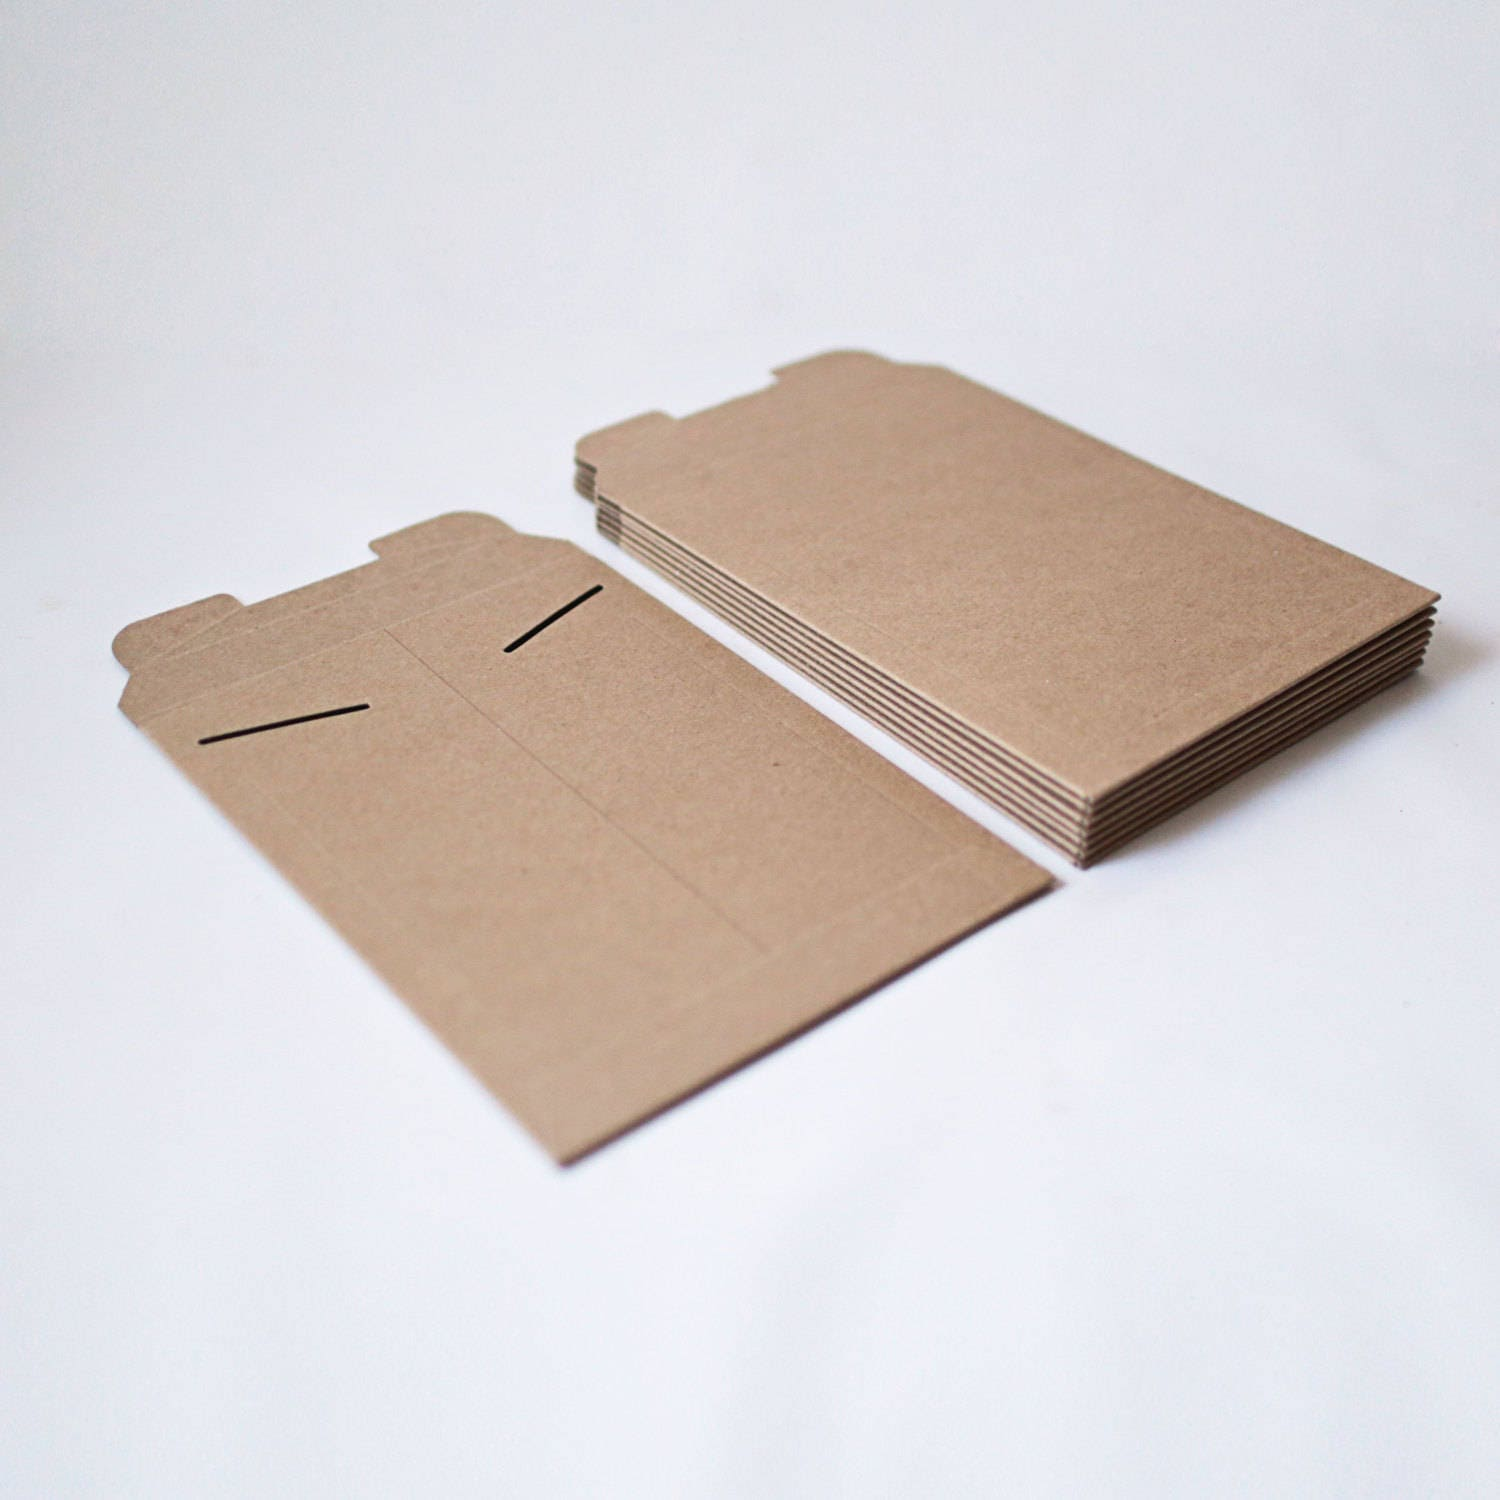 6 In X 8 In Kraft Stay Flat Mailers Set Of 100 5x7 Prints